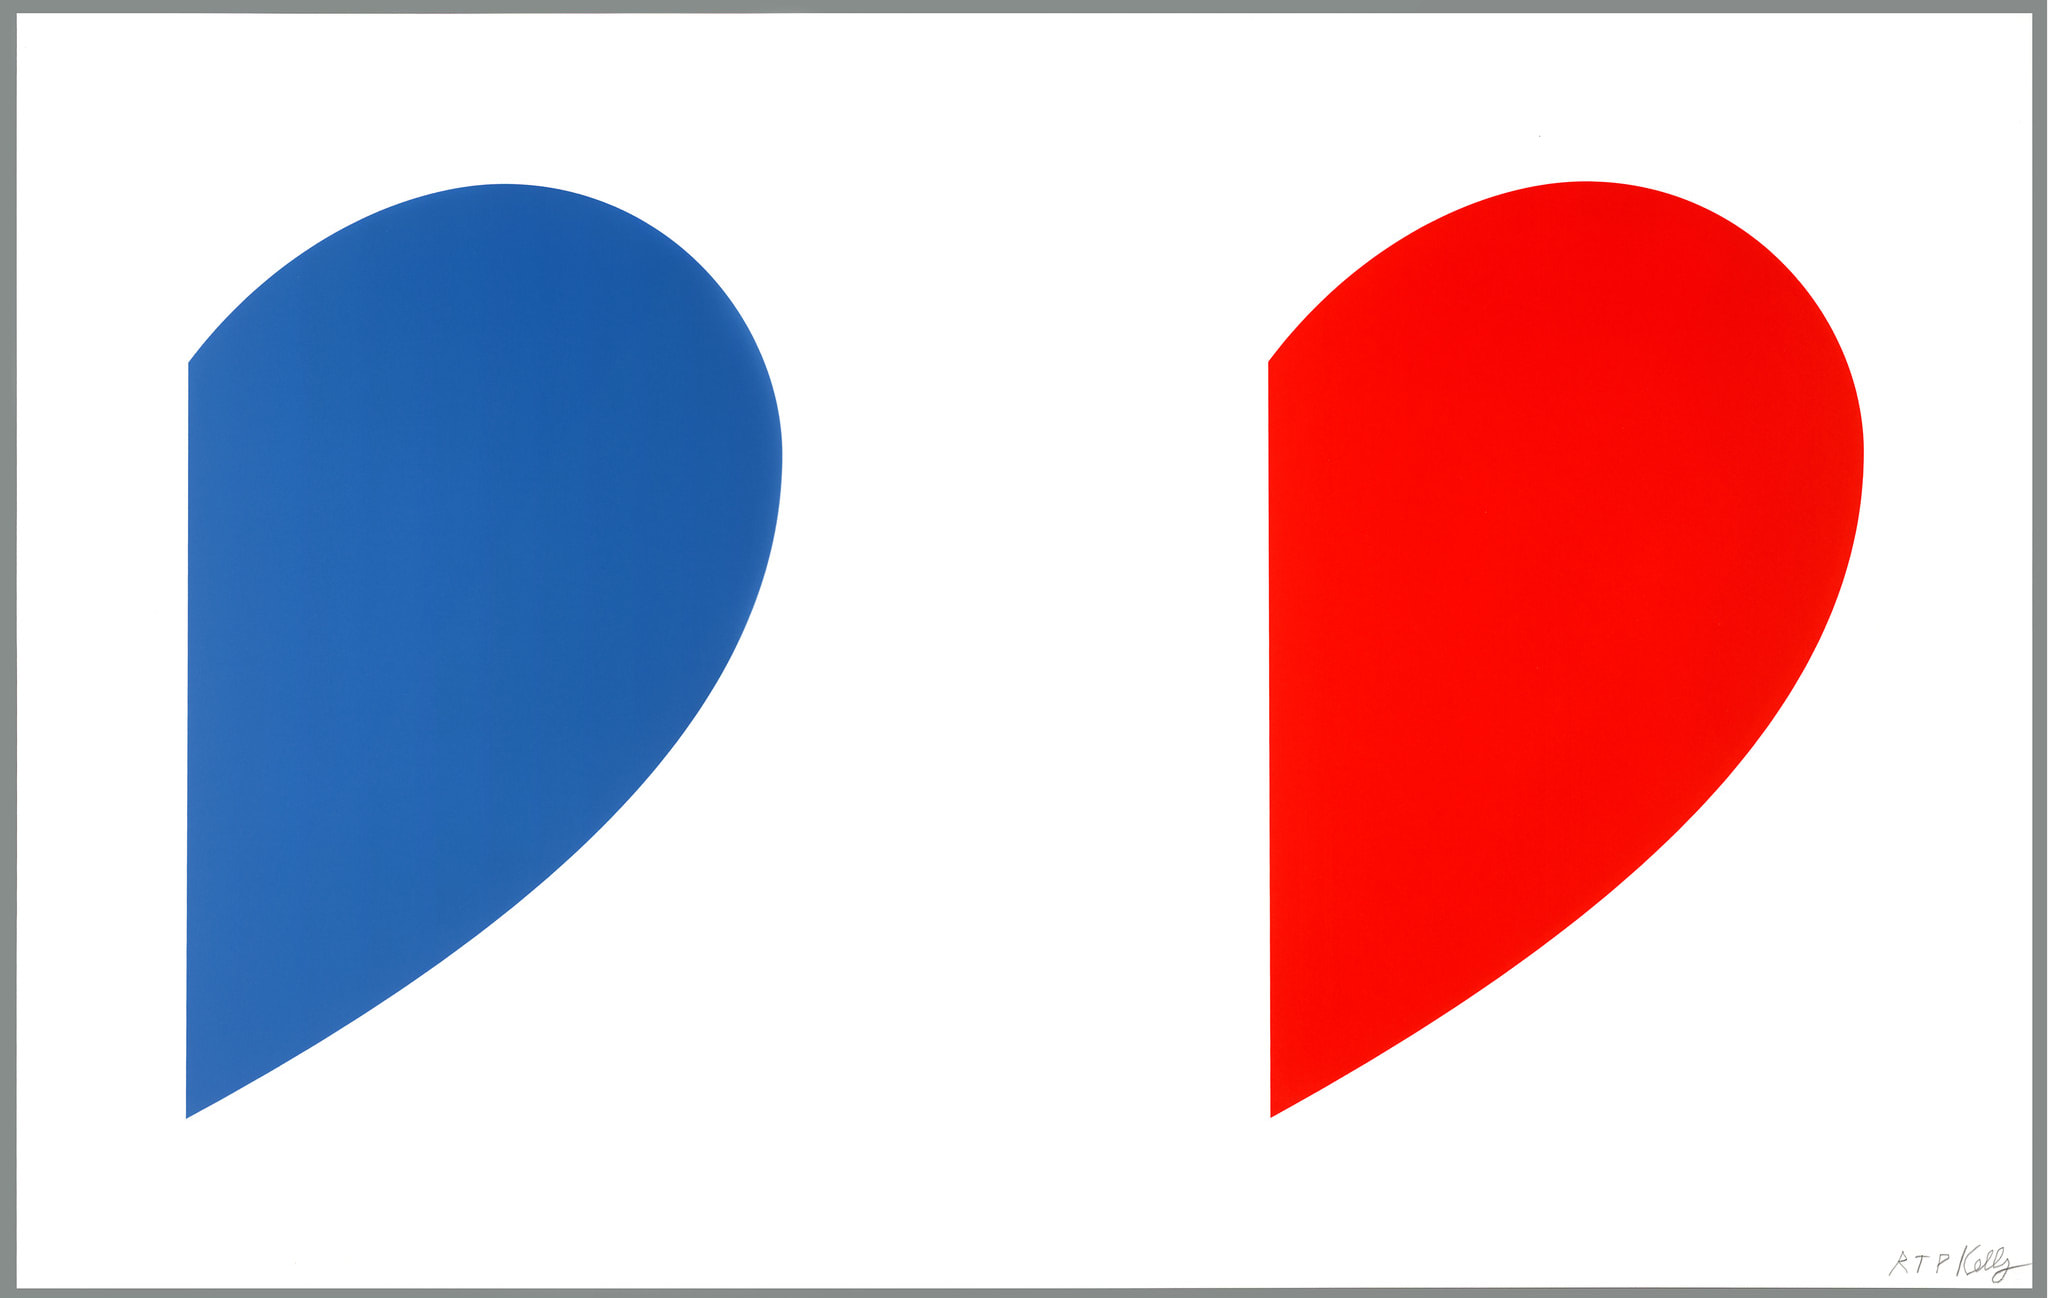 Blue Curve/Red Curve by Ellsworth Kelly